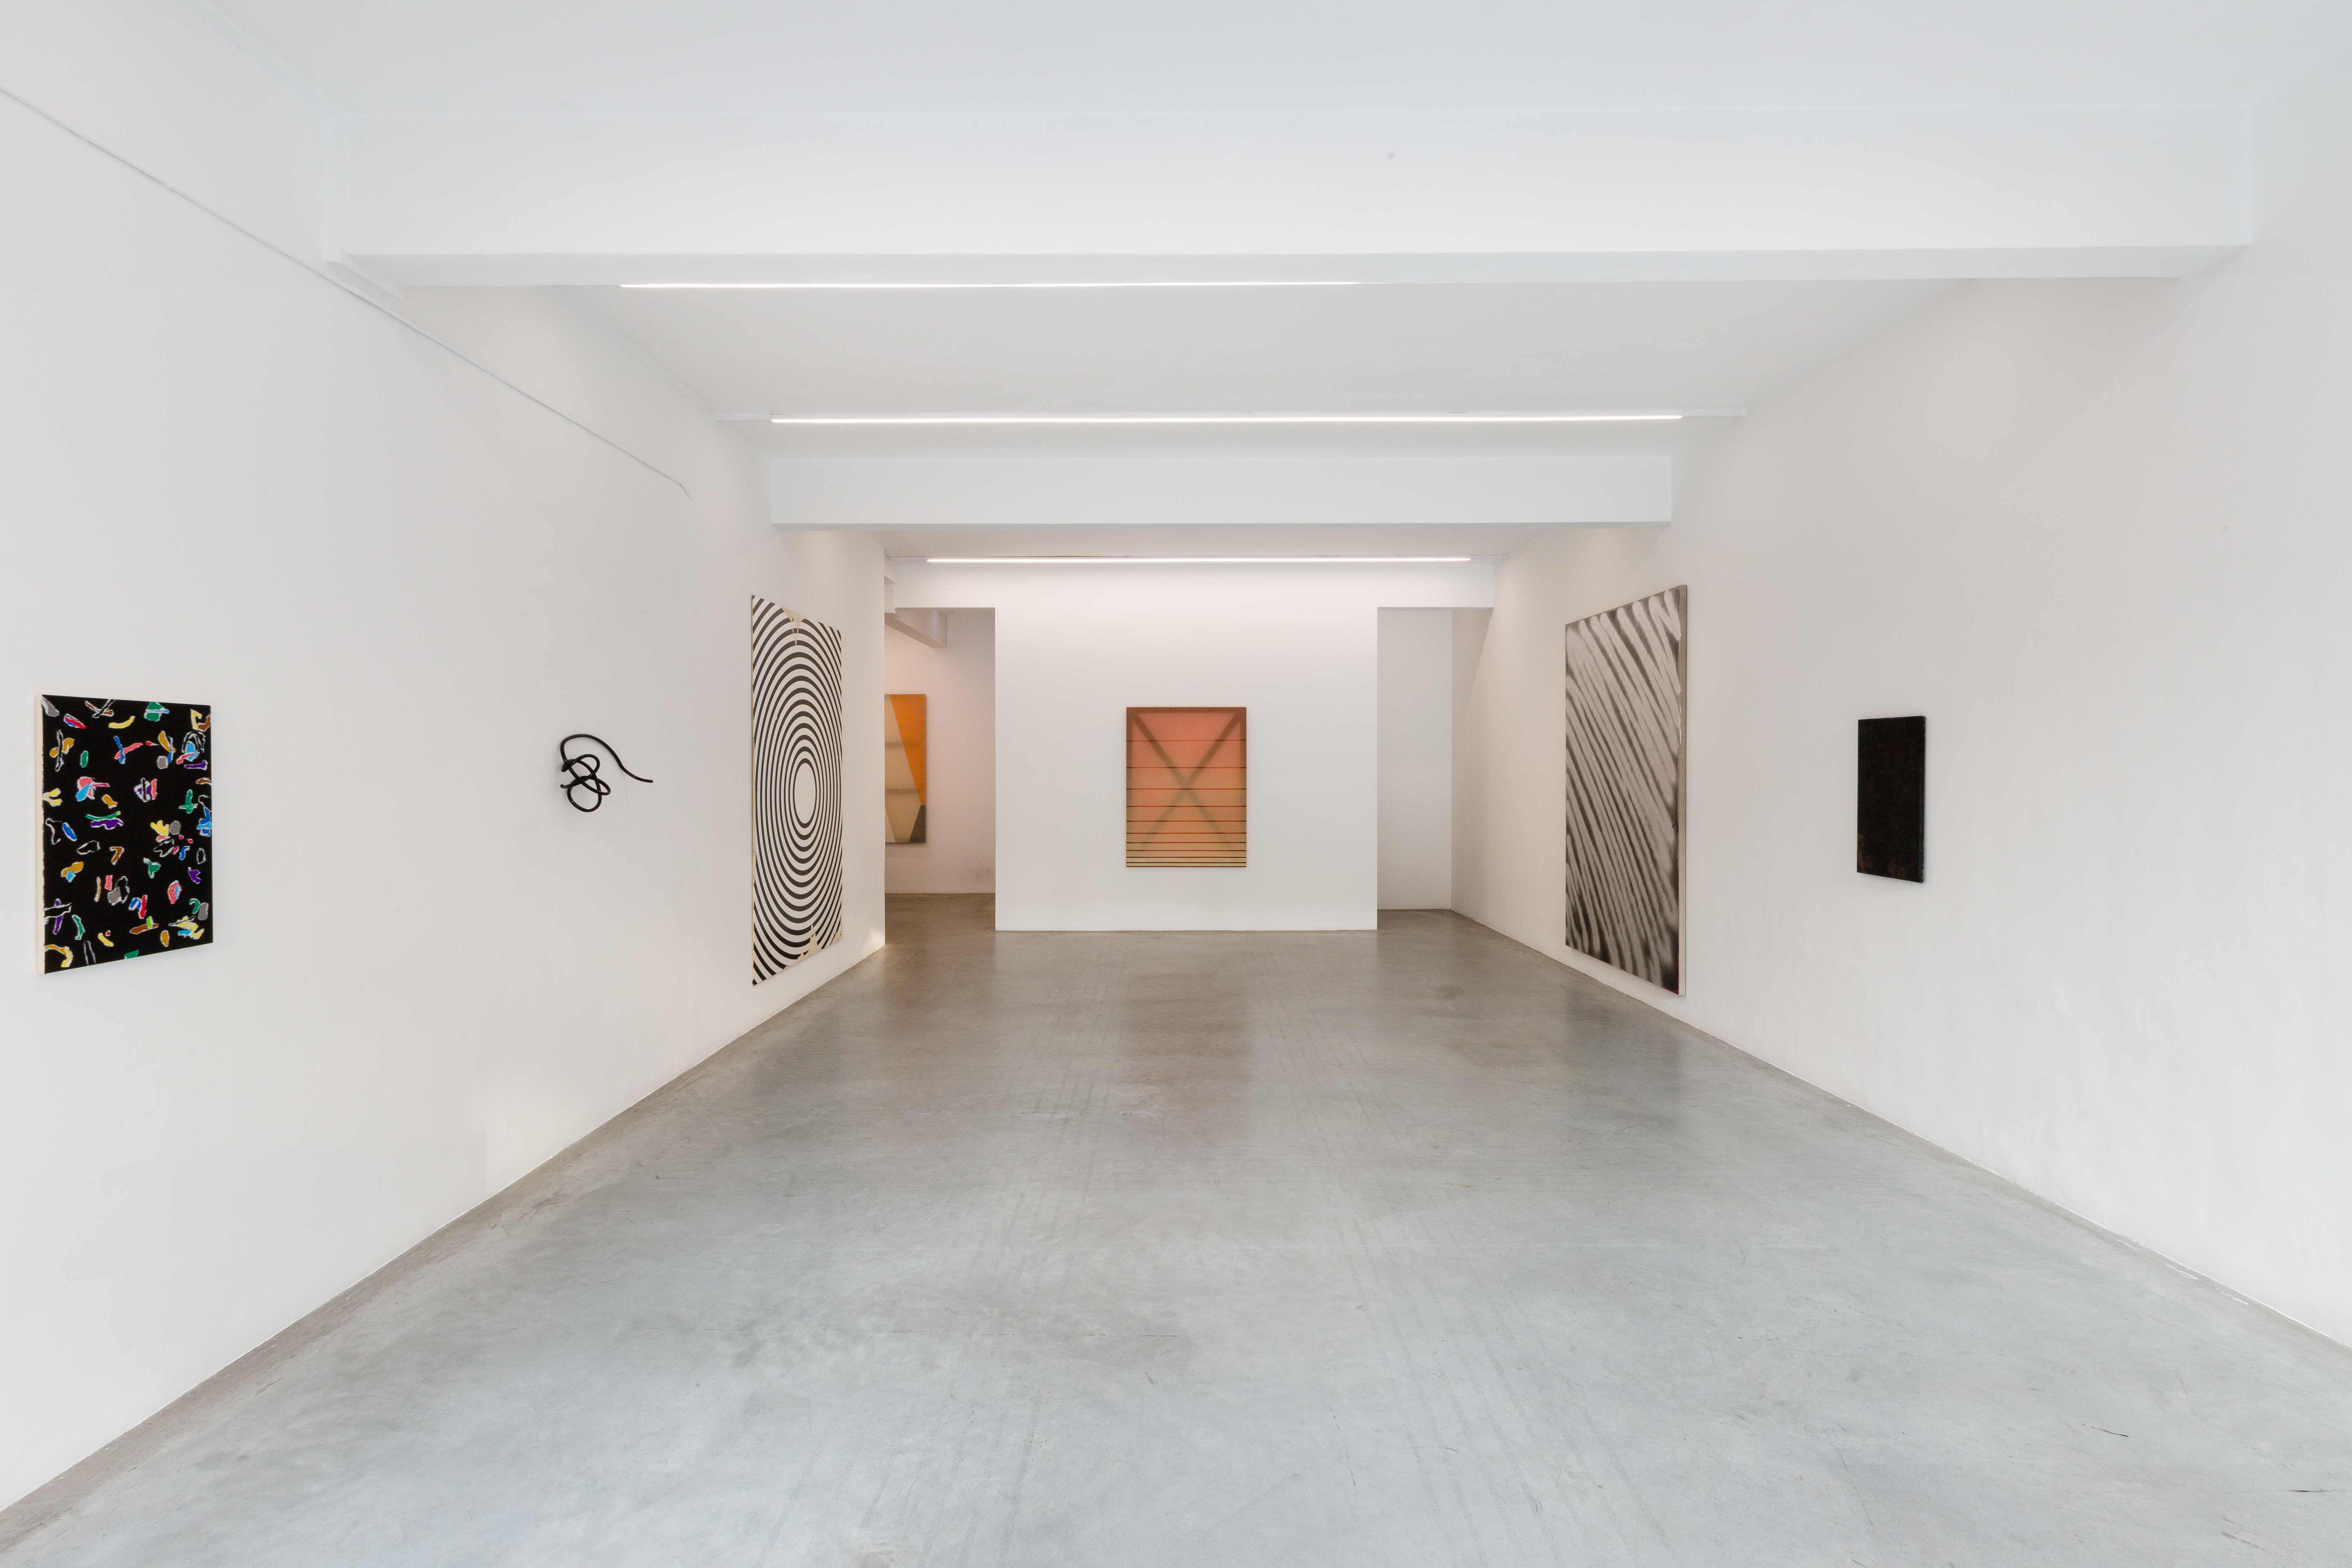 Installation View, 'All That Matters Is What's Left Behind', Ronchini Gallery 2014. Courtesy Ronchini Gallery